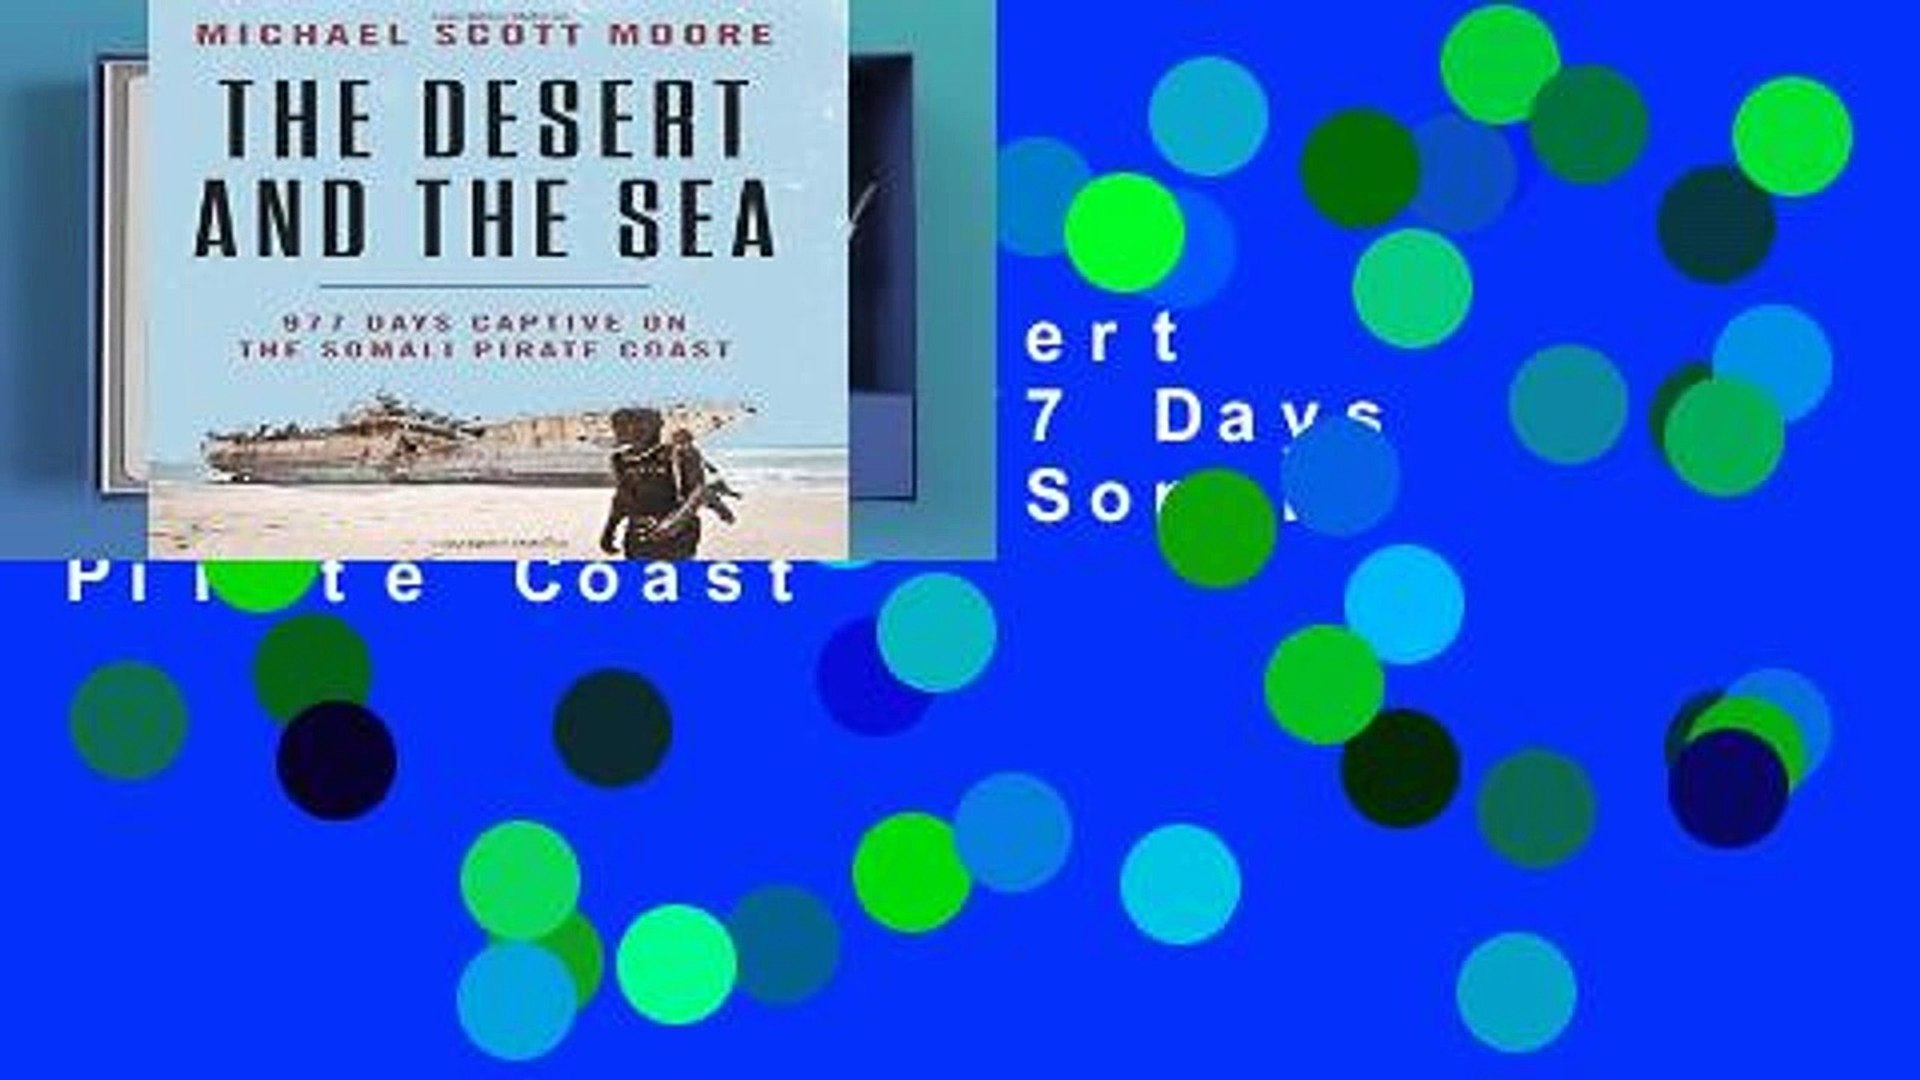 Review  The Desert and the Sea: 977 Days Captive on the Somali Pirate Coast